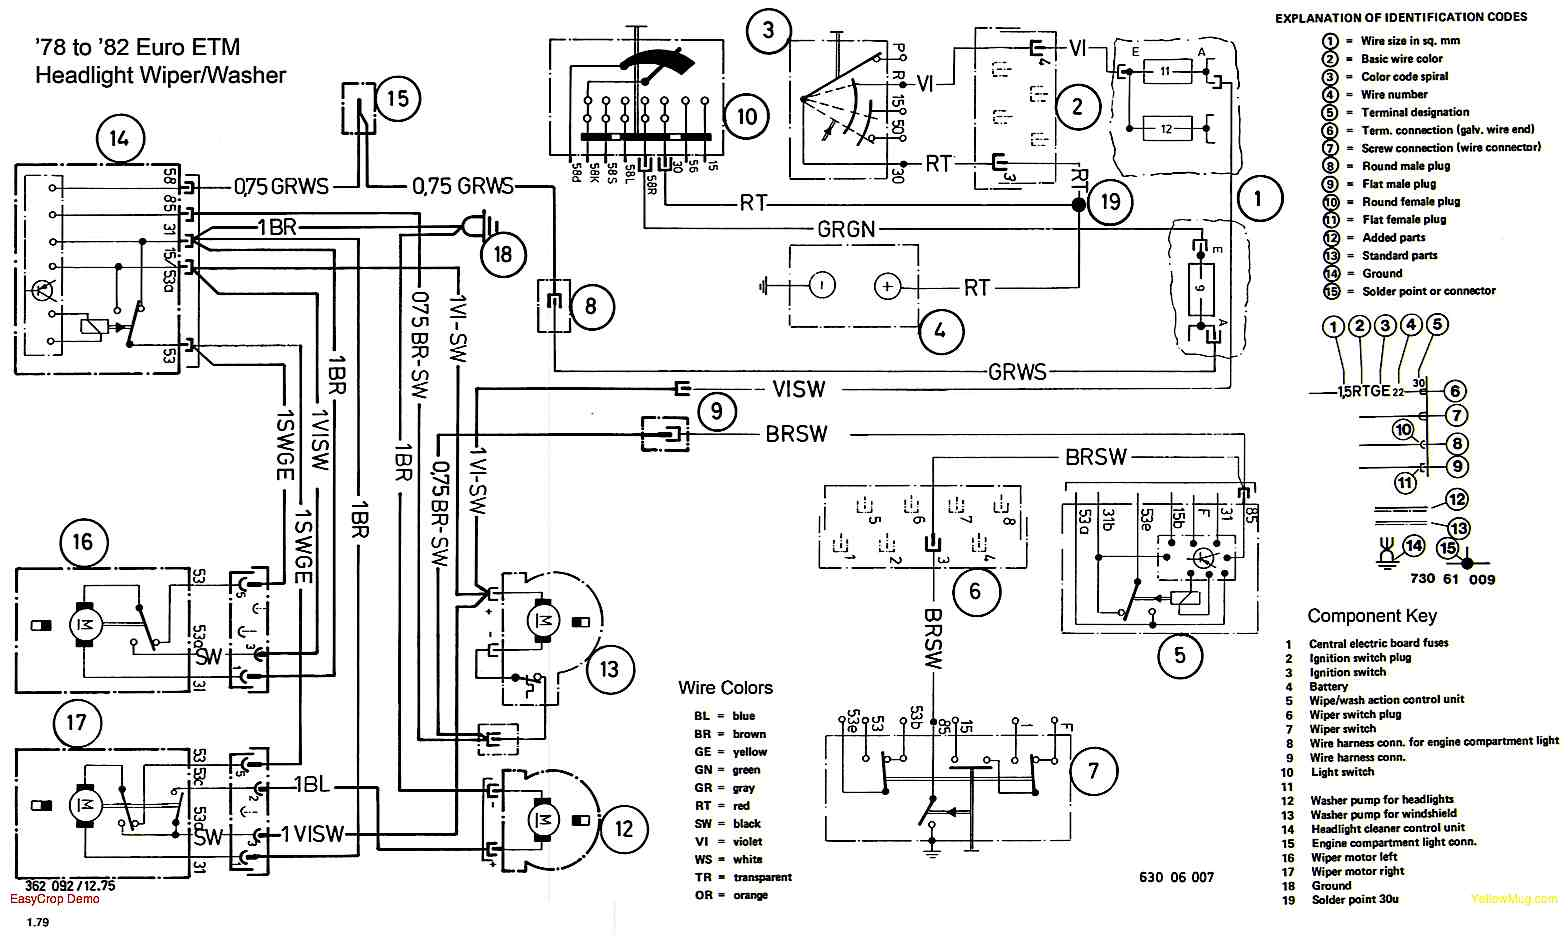 Need the ECE (European) wiring diagram